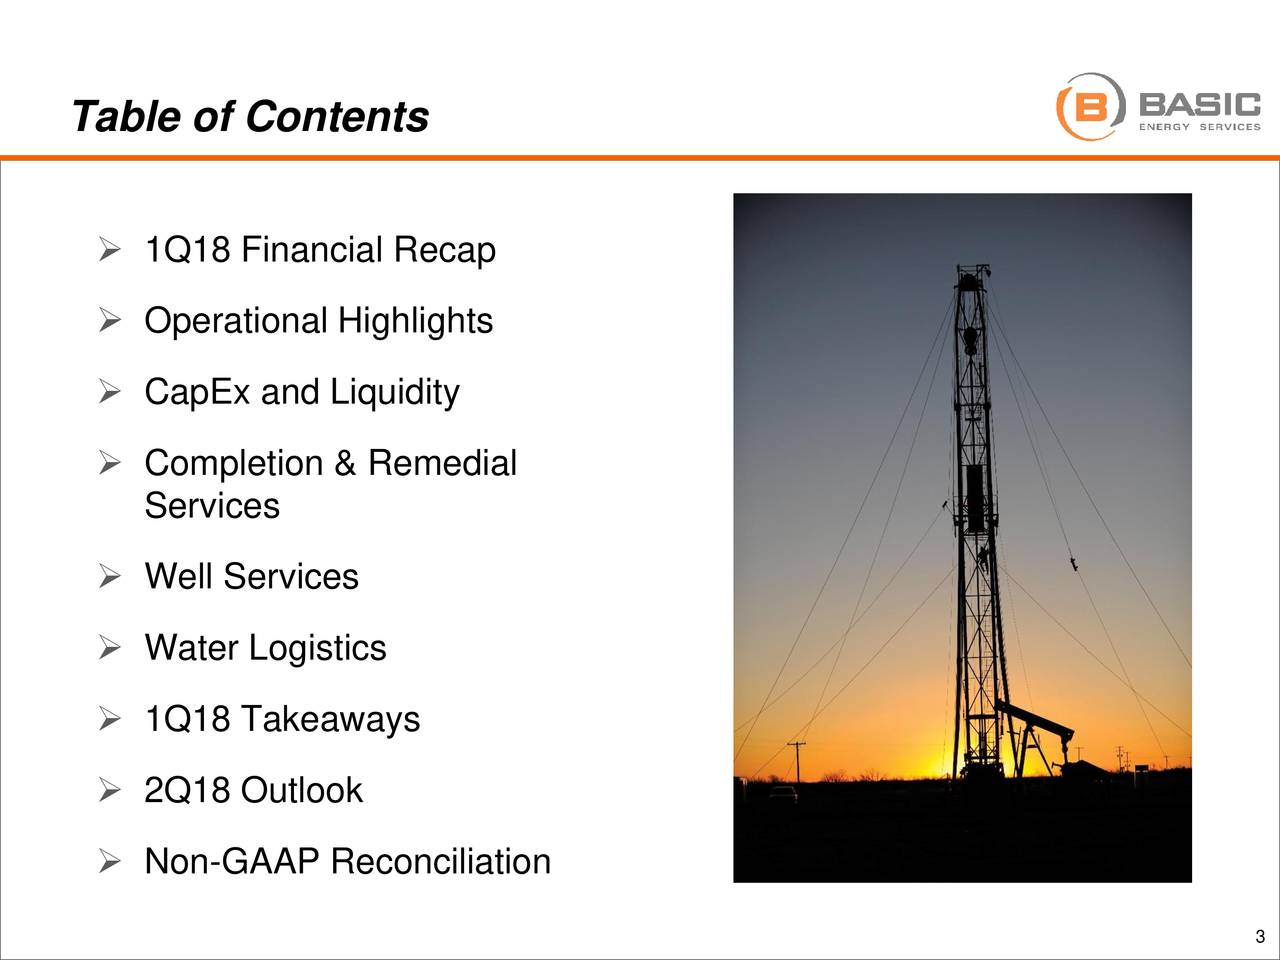  1Q18 Financial Recap  Operational Highlights  CapEx and Liquidity  Completion & Remedial Services  Well Services  Water Logistics  1Q18 Takeaways  2Q18 Outlook  Non-GAAP Reconciliation 3